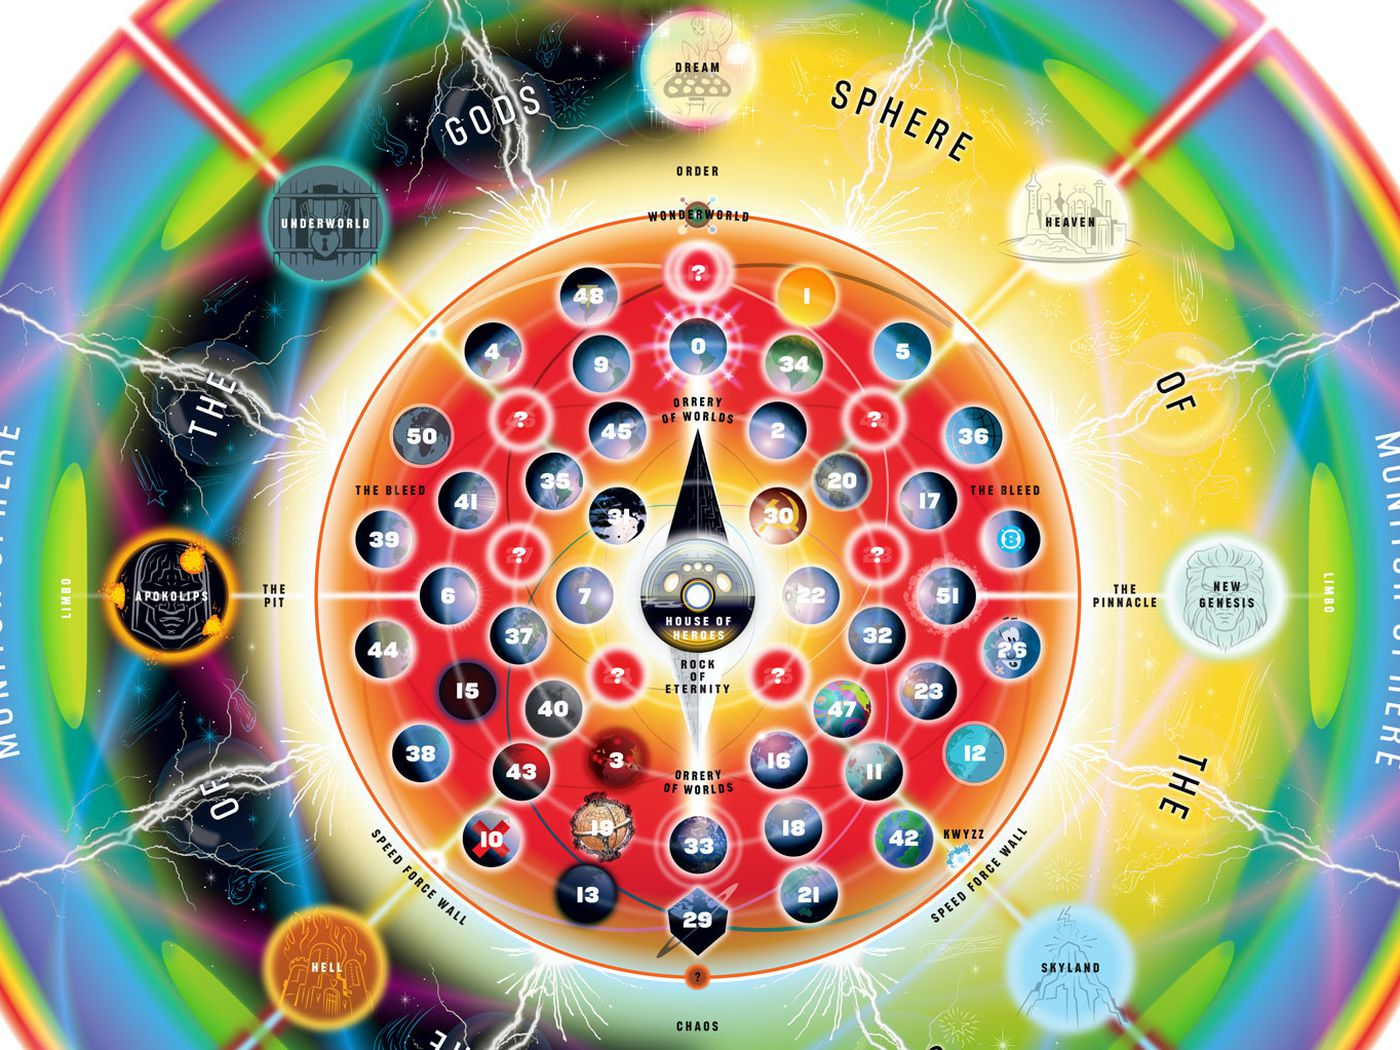 Dc Map Of The Multiverse A DC Comics guide to the multiverse's 52 Earths and alternate